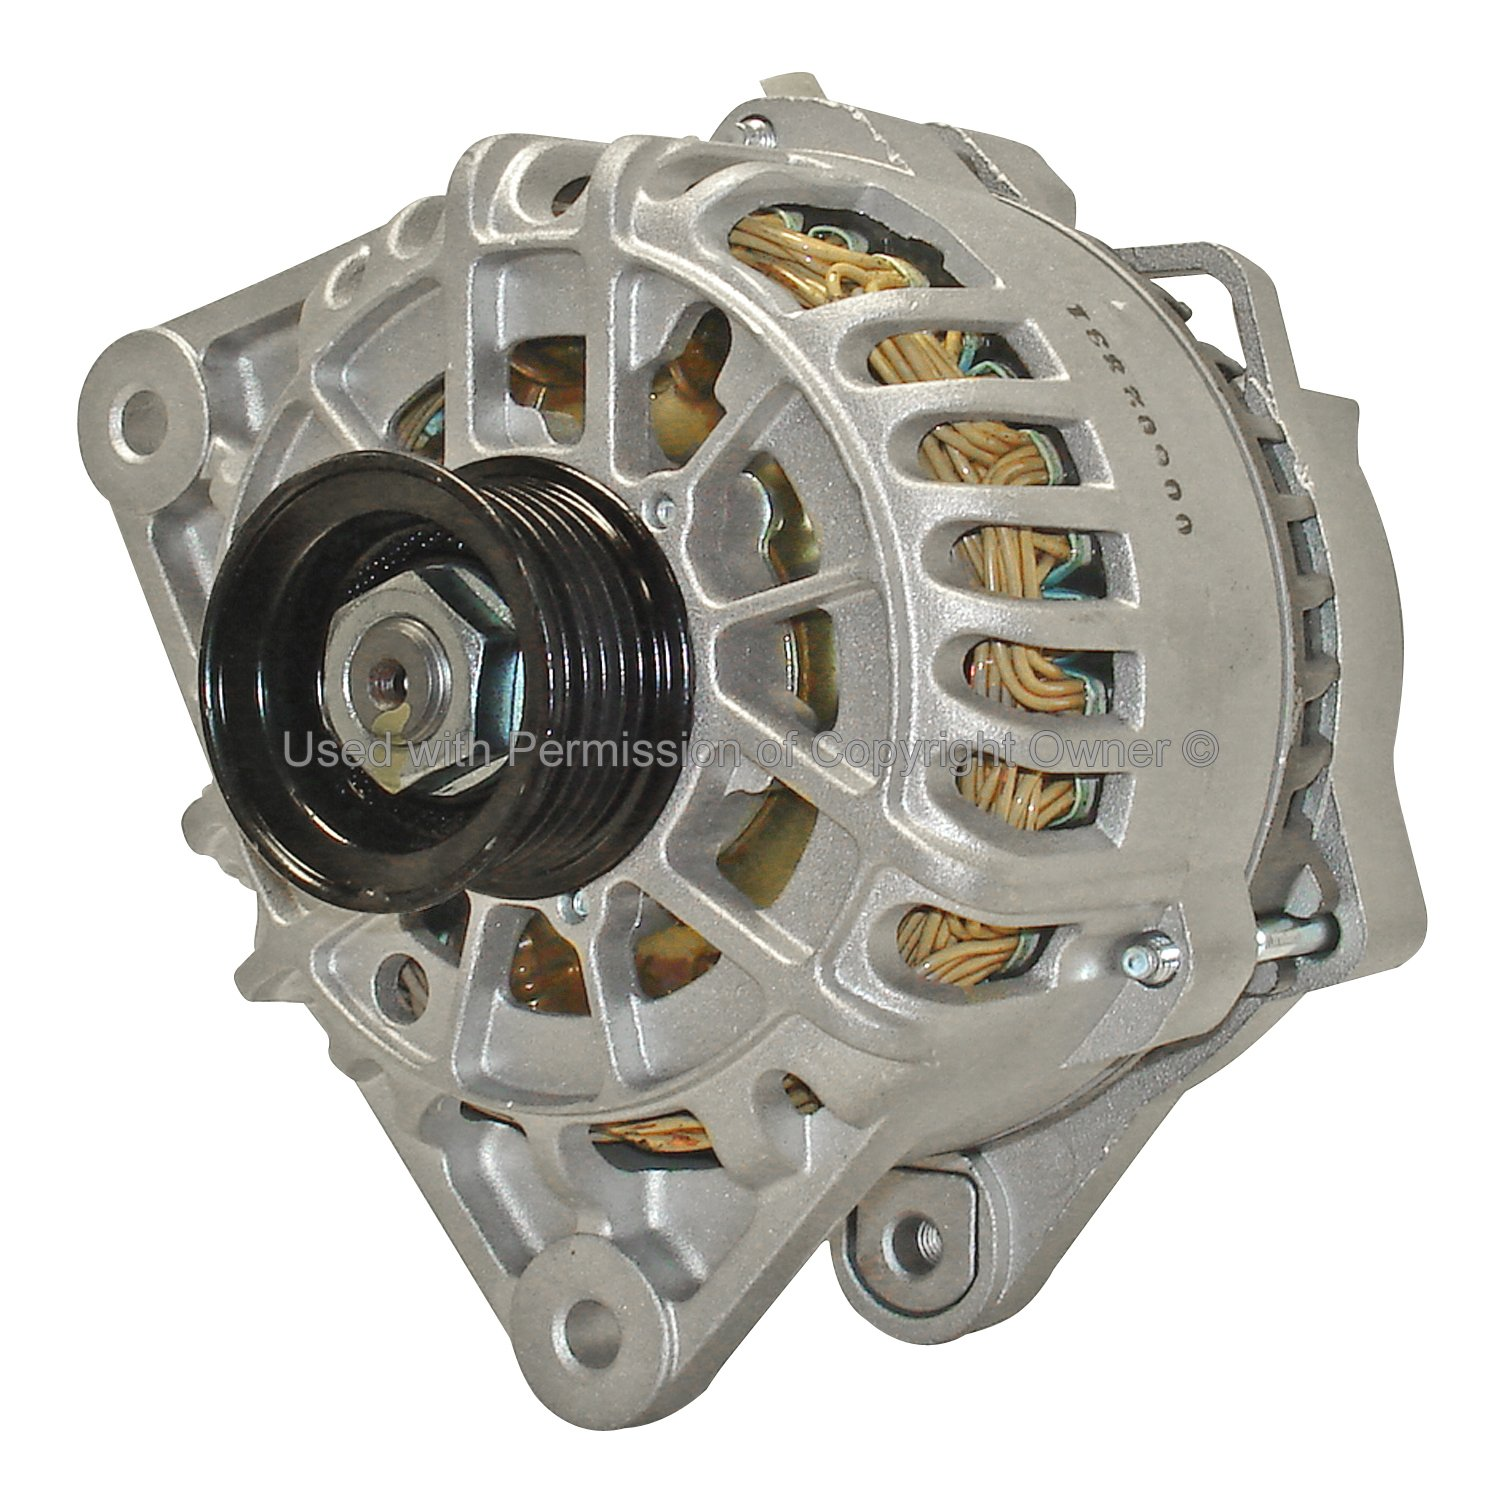 hight resolution of details about mpa 8250611 alternator for ford contour mercury cougar mystique